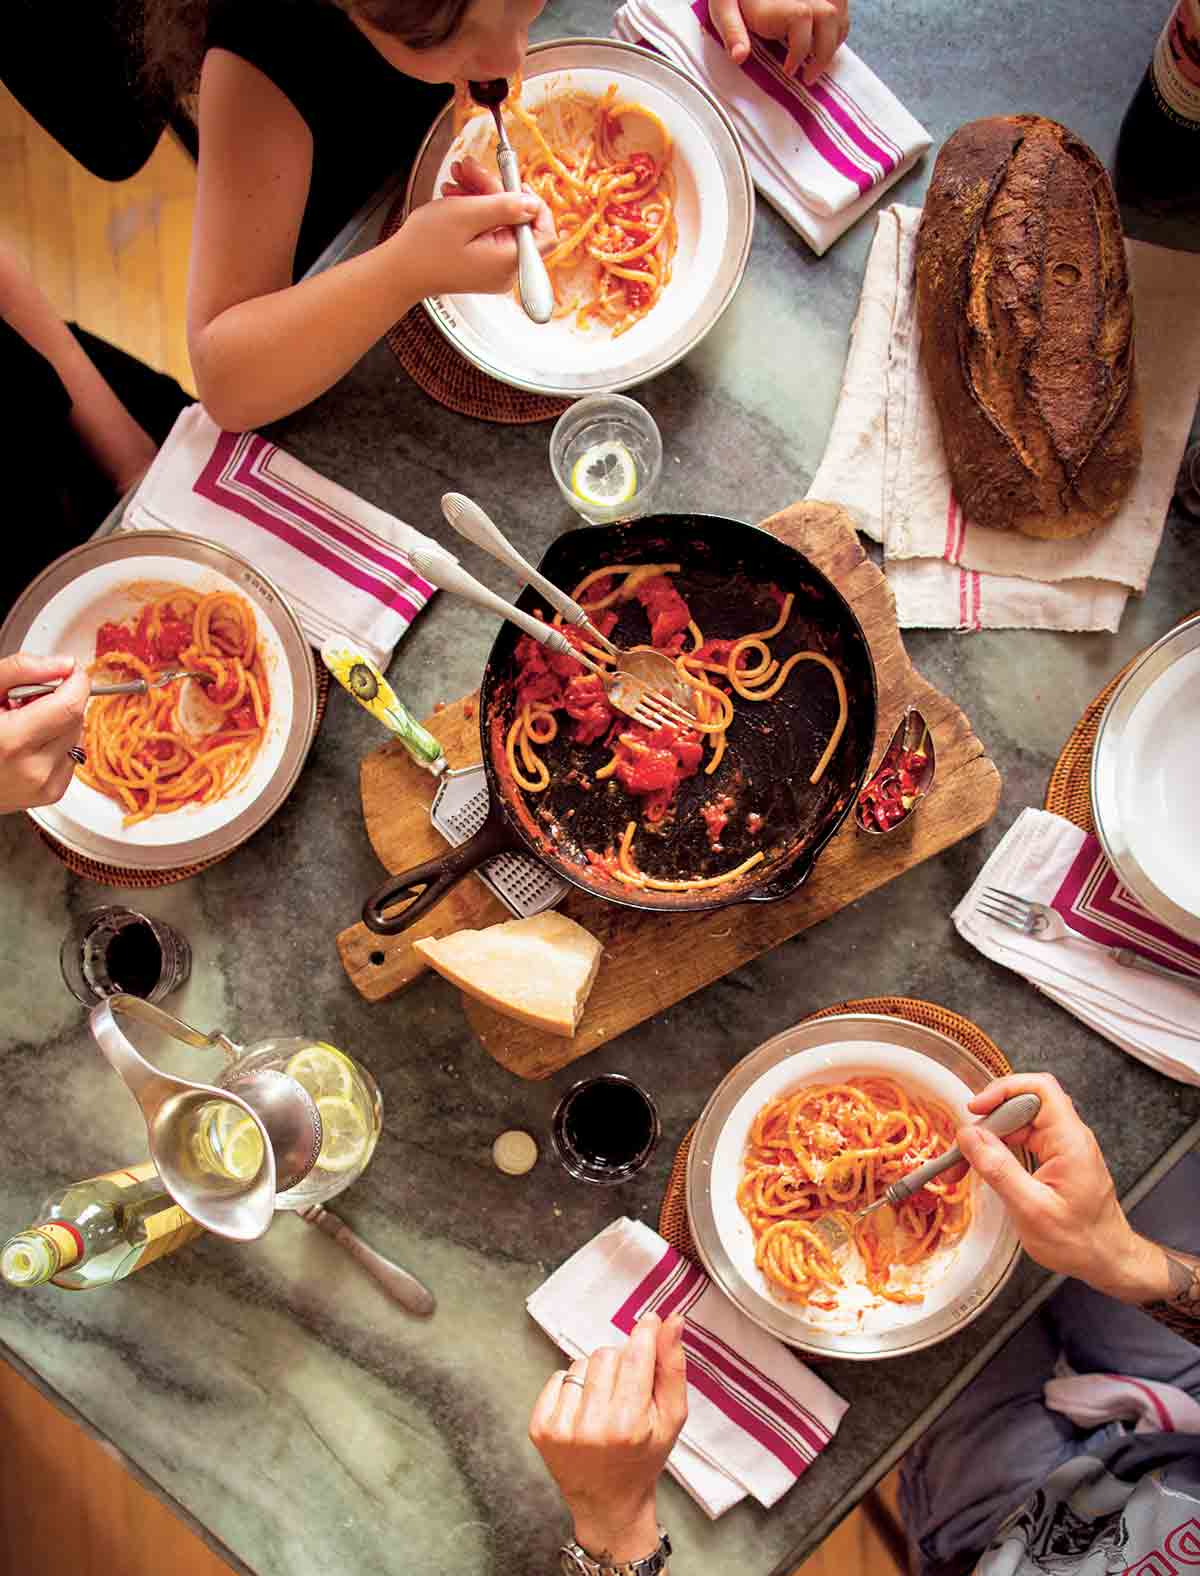 People gathered around a cast-iron skillet on a wooden board with some spaghetti and red sauce.